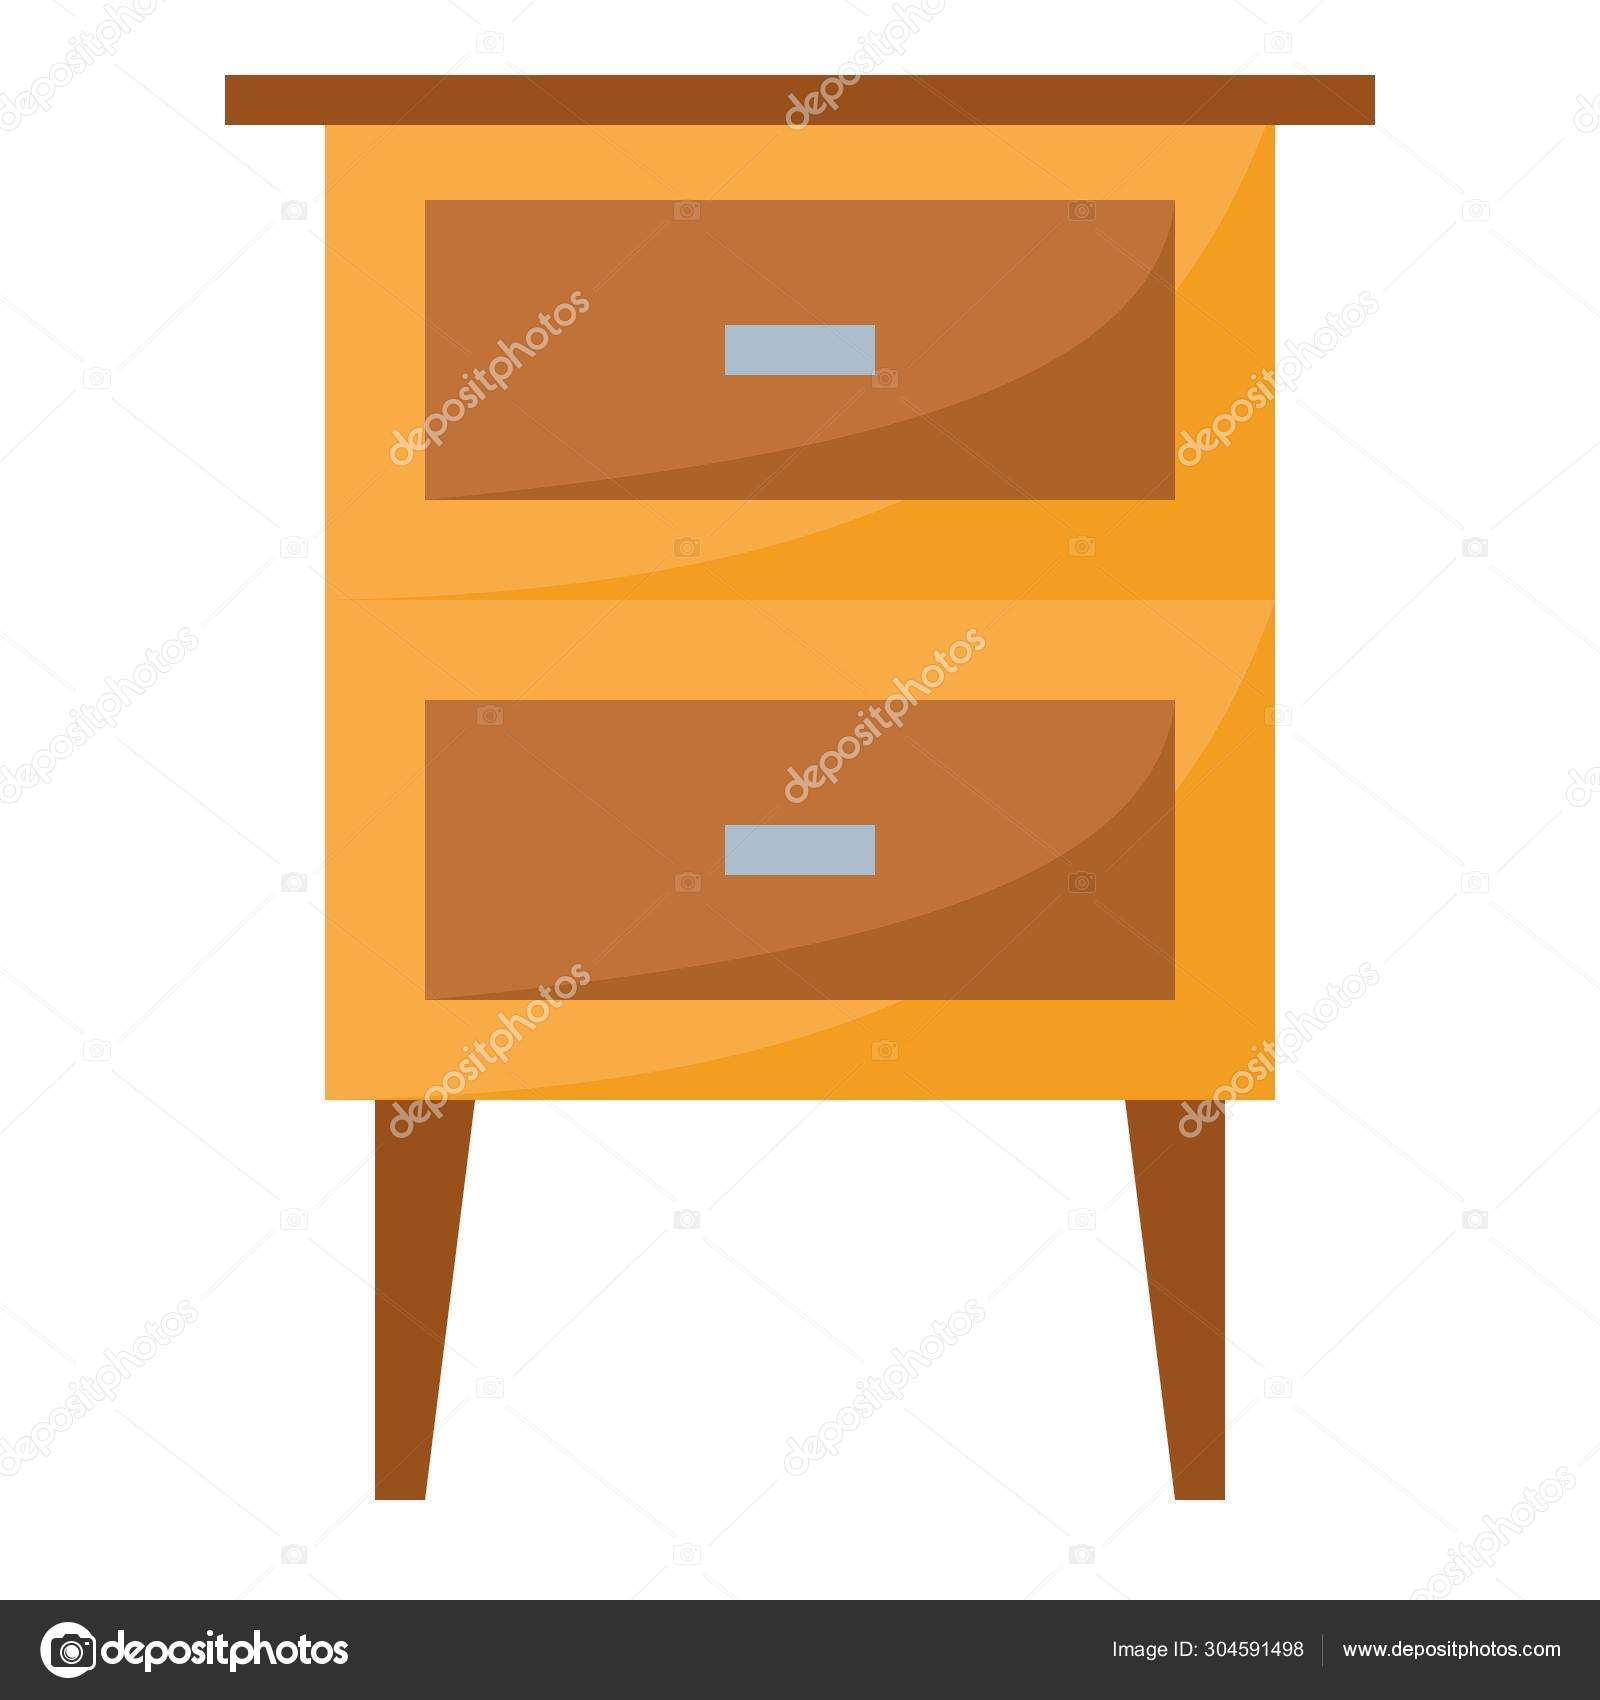 Bed Side Table Simple Design Stock Vector C Iconscout 304591498